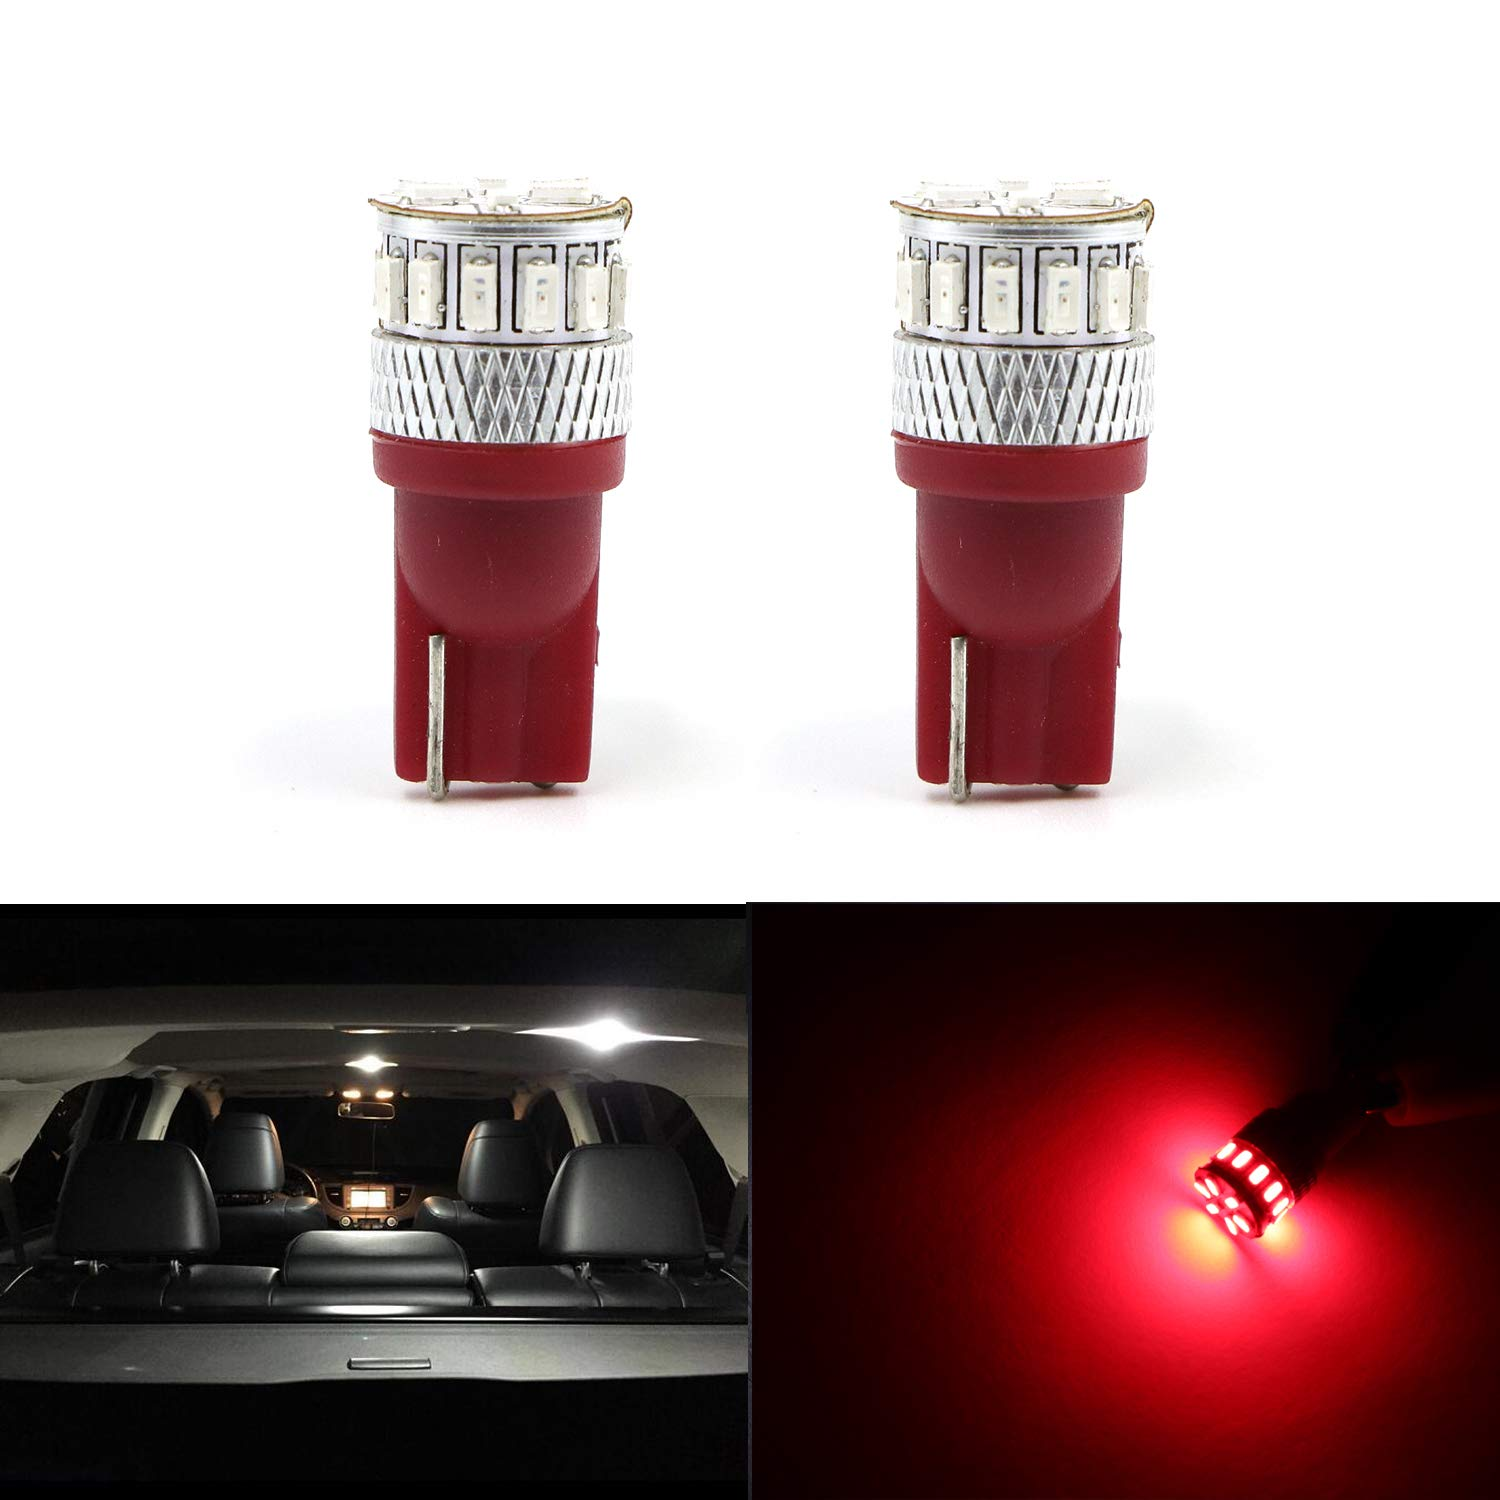 T10 Wedge 194 168 2825 175 W5W LED 6000K White Light Bulbs for License Plate Tag Light Lamp Bulbs (Pack of 2) AEagle